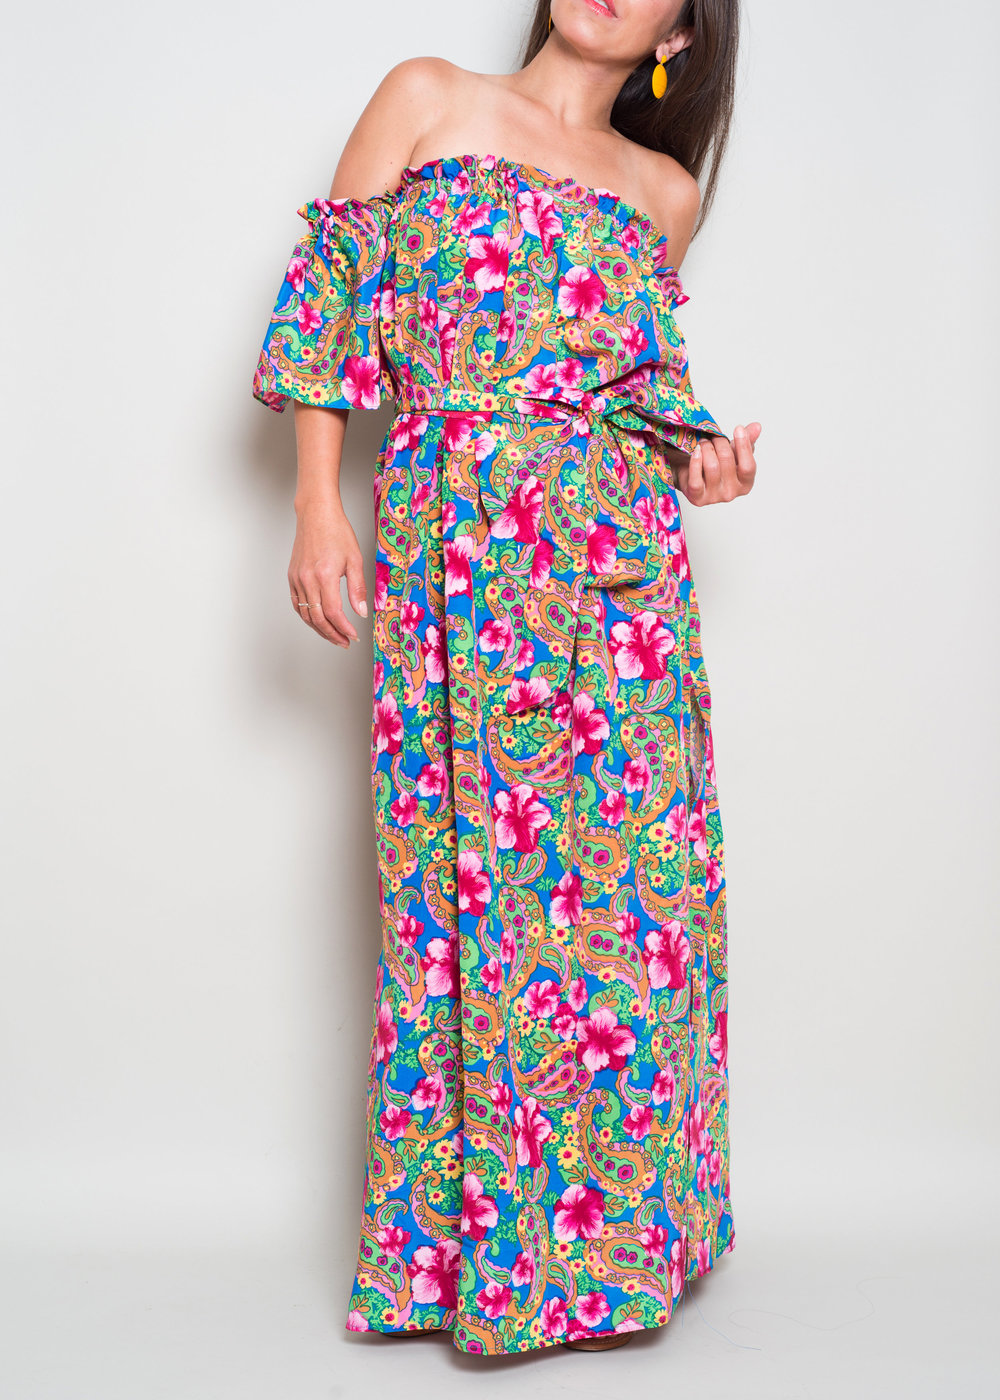 psychedelic paisley dress.jpg